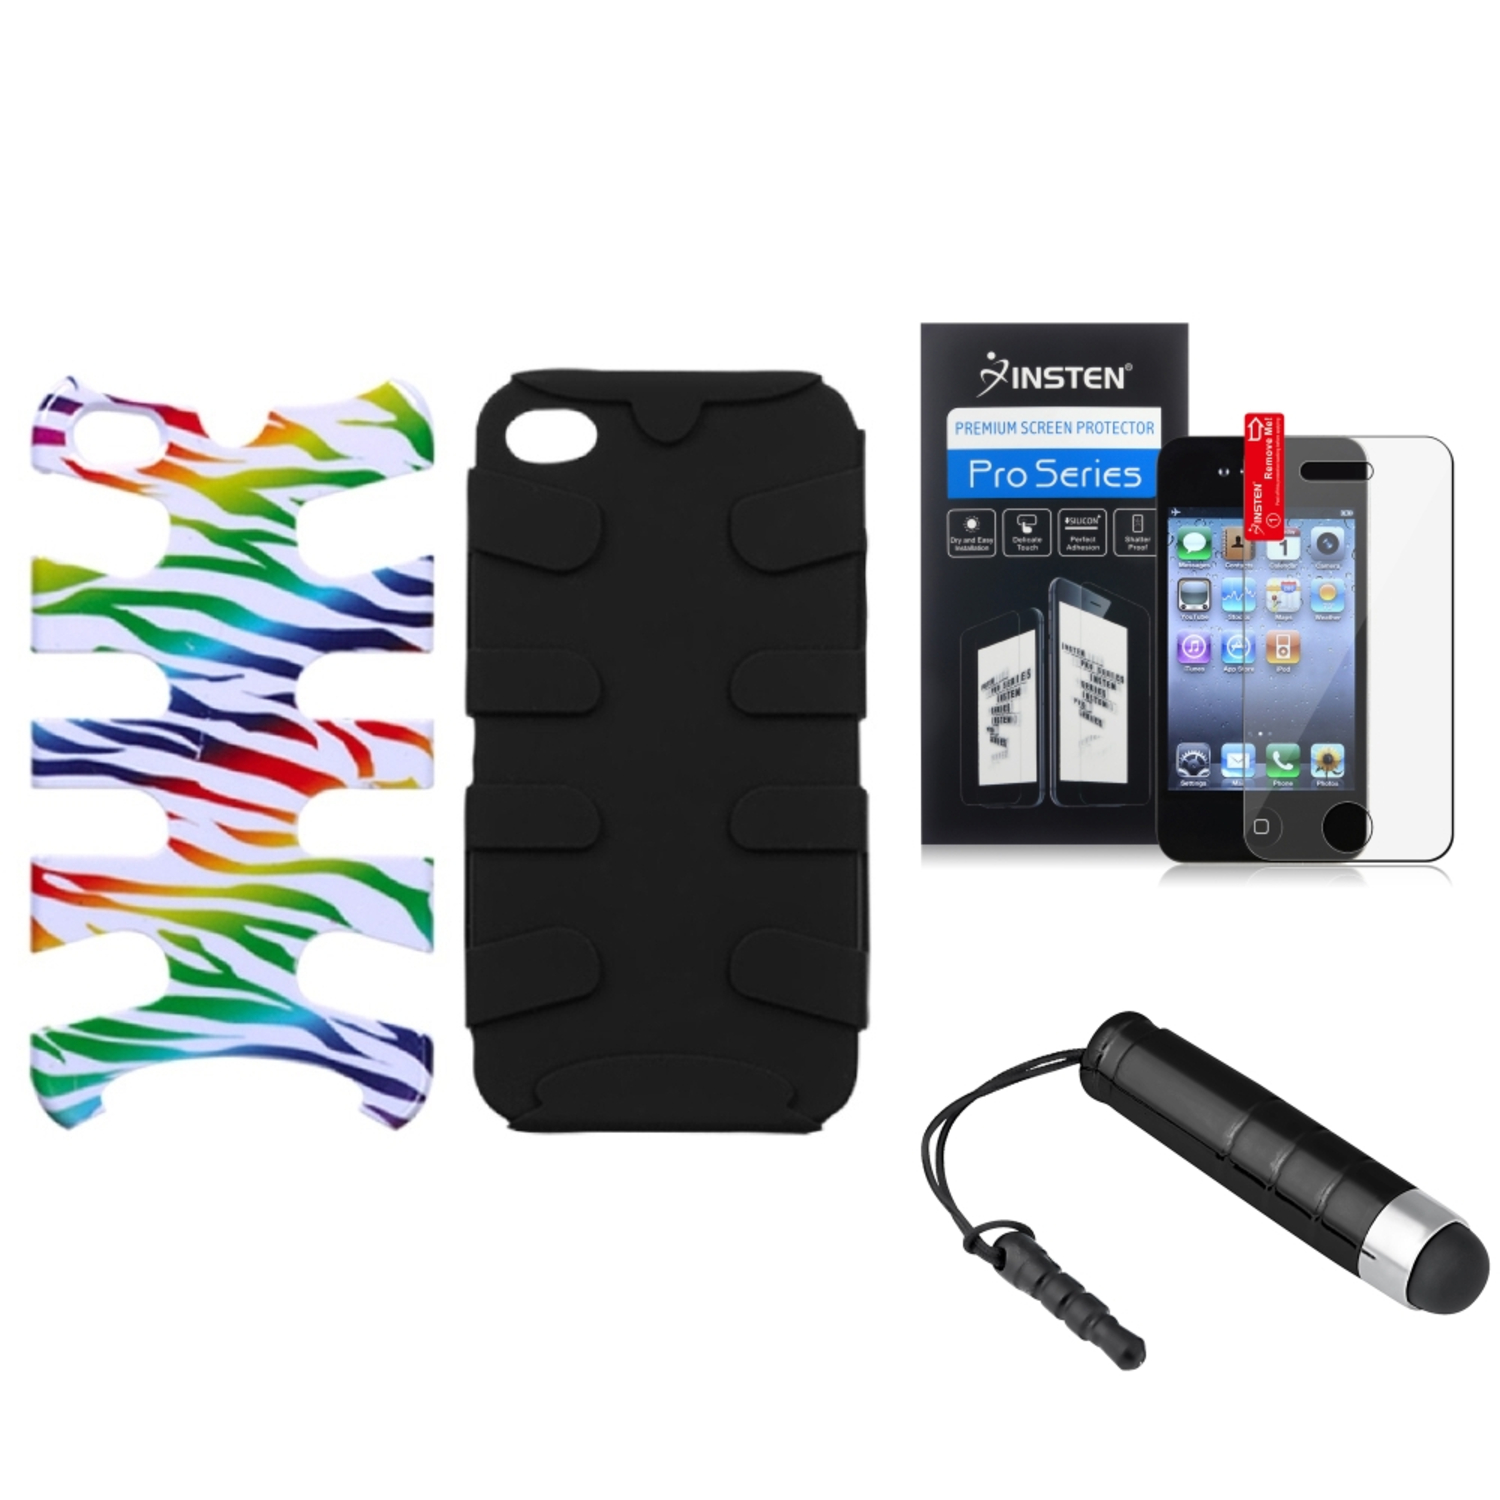 Insten Colorful Zebra /Black Fishbone Phone Case Cover Film Mini Pen For iPhone 4S/4